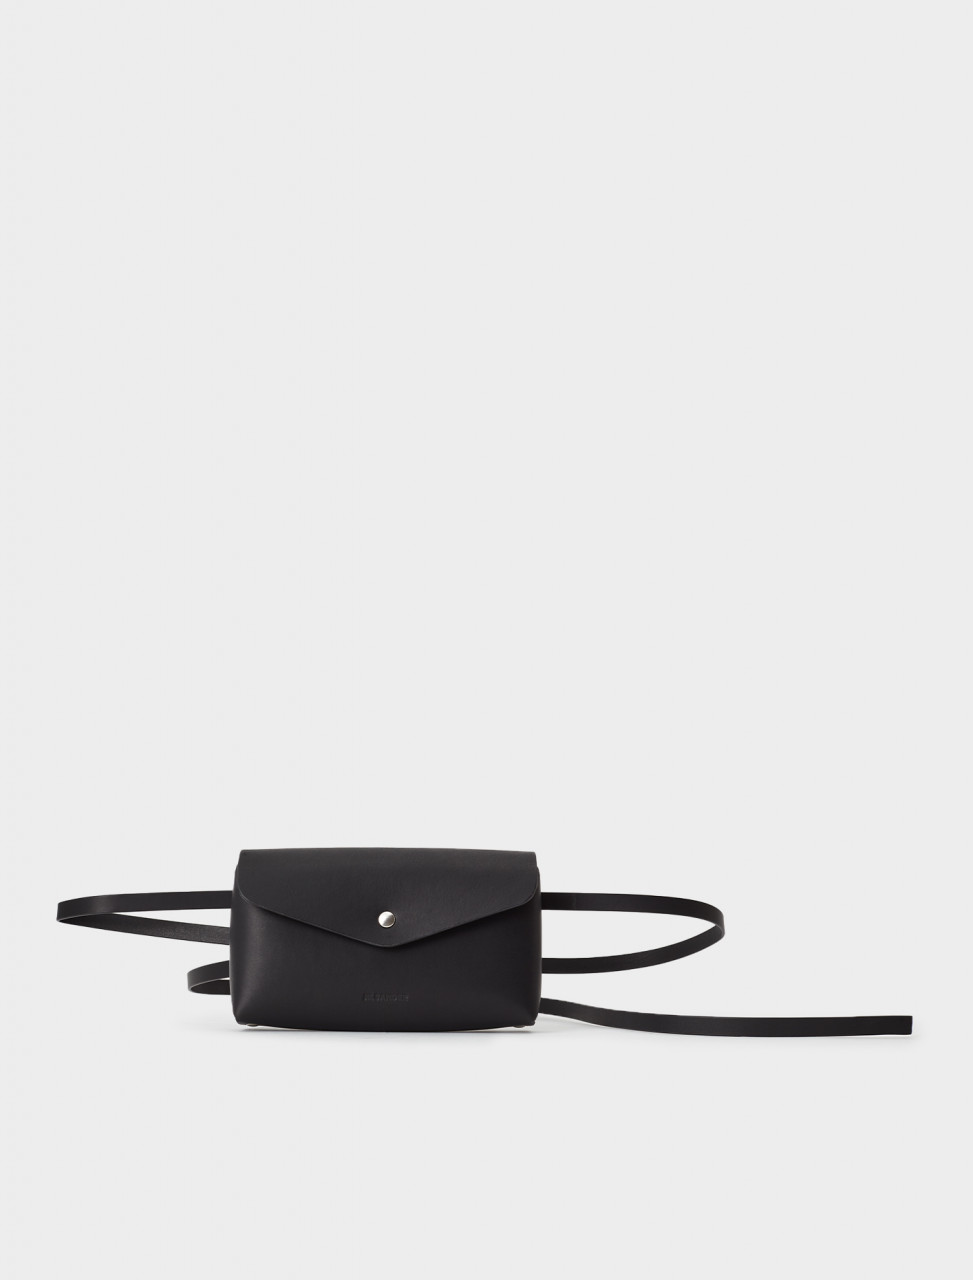 130-JSMR840103-MRS00004-001 Jil Sander Military Belt Bag in Black